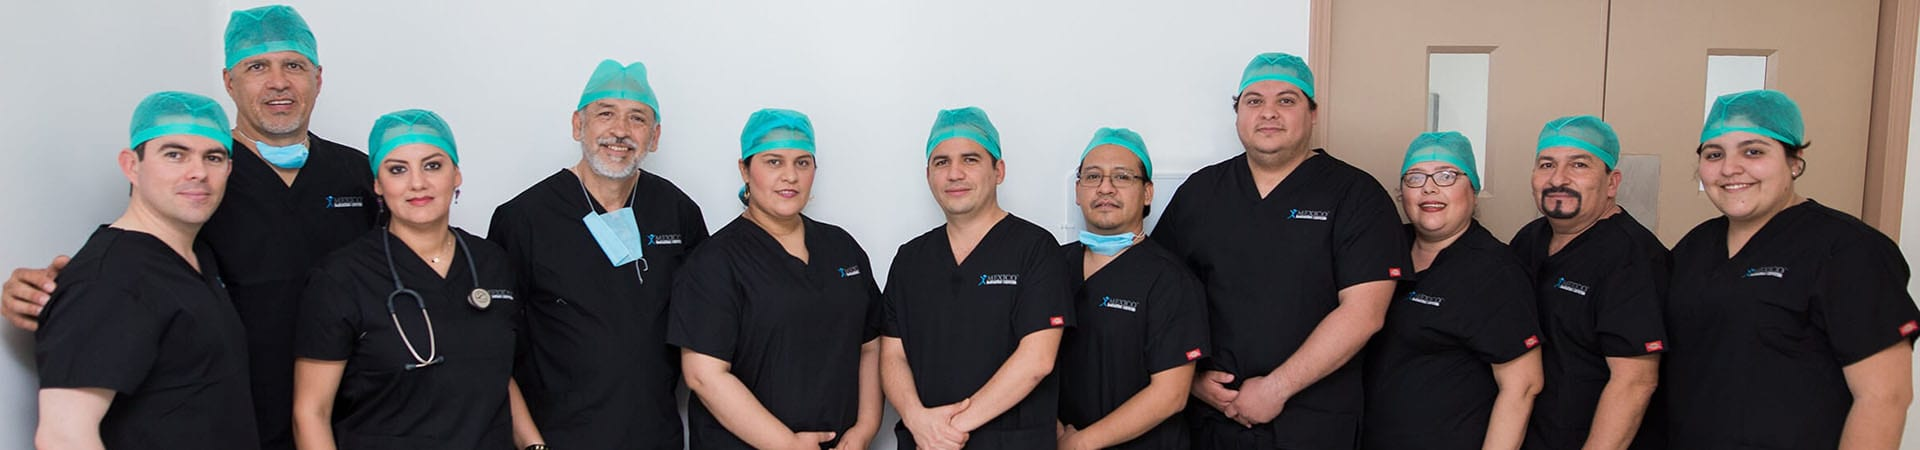 Bariatric Surgeons in Mexico - Mexico Bariatric Center Staff